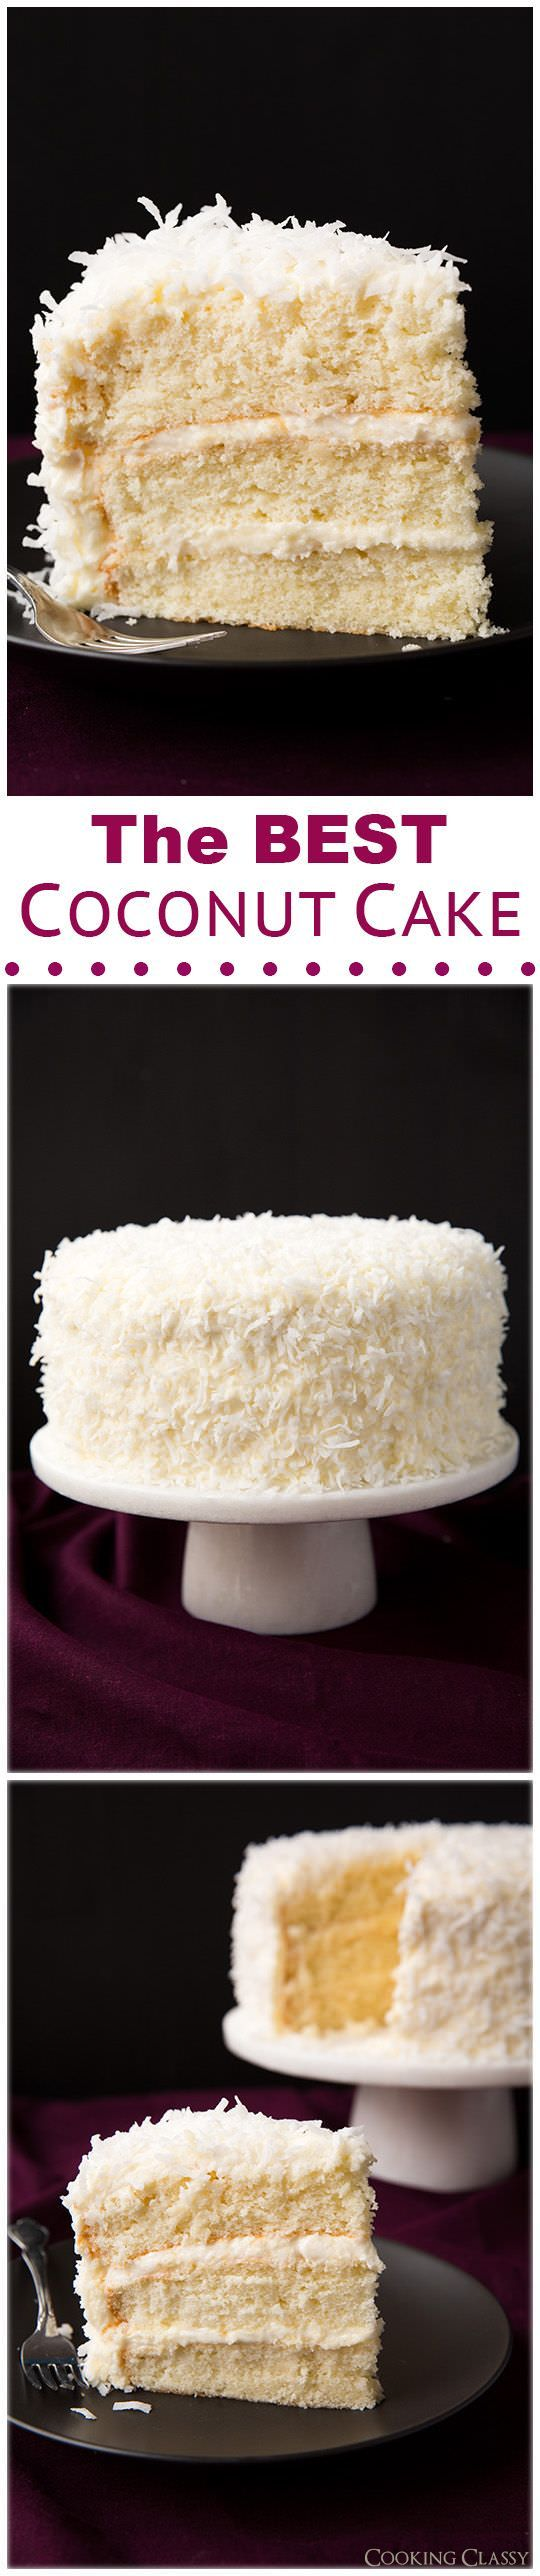 This classic coconut cake is an old days recipe. Incredibly moist and rich in coconut flavor with every bite you take, it is so different in flavor.